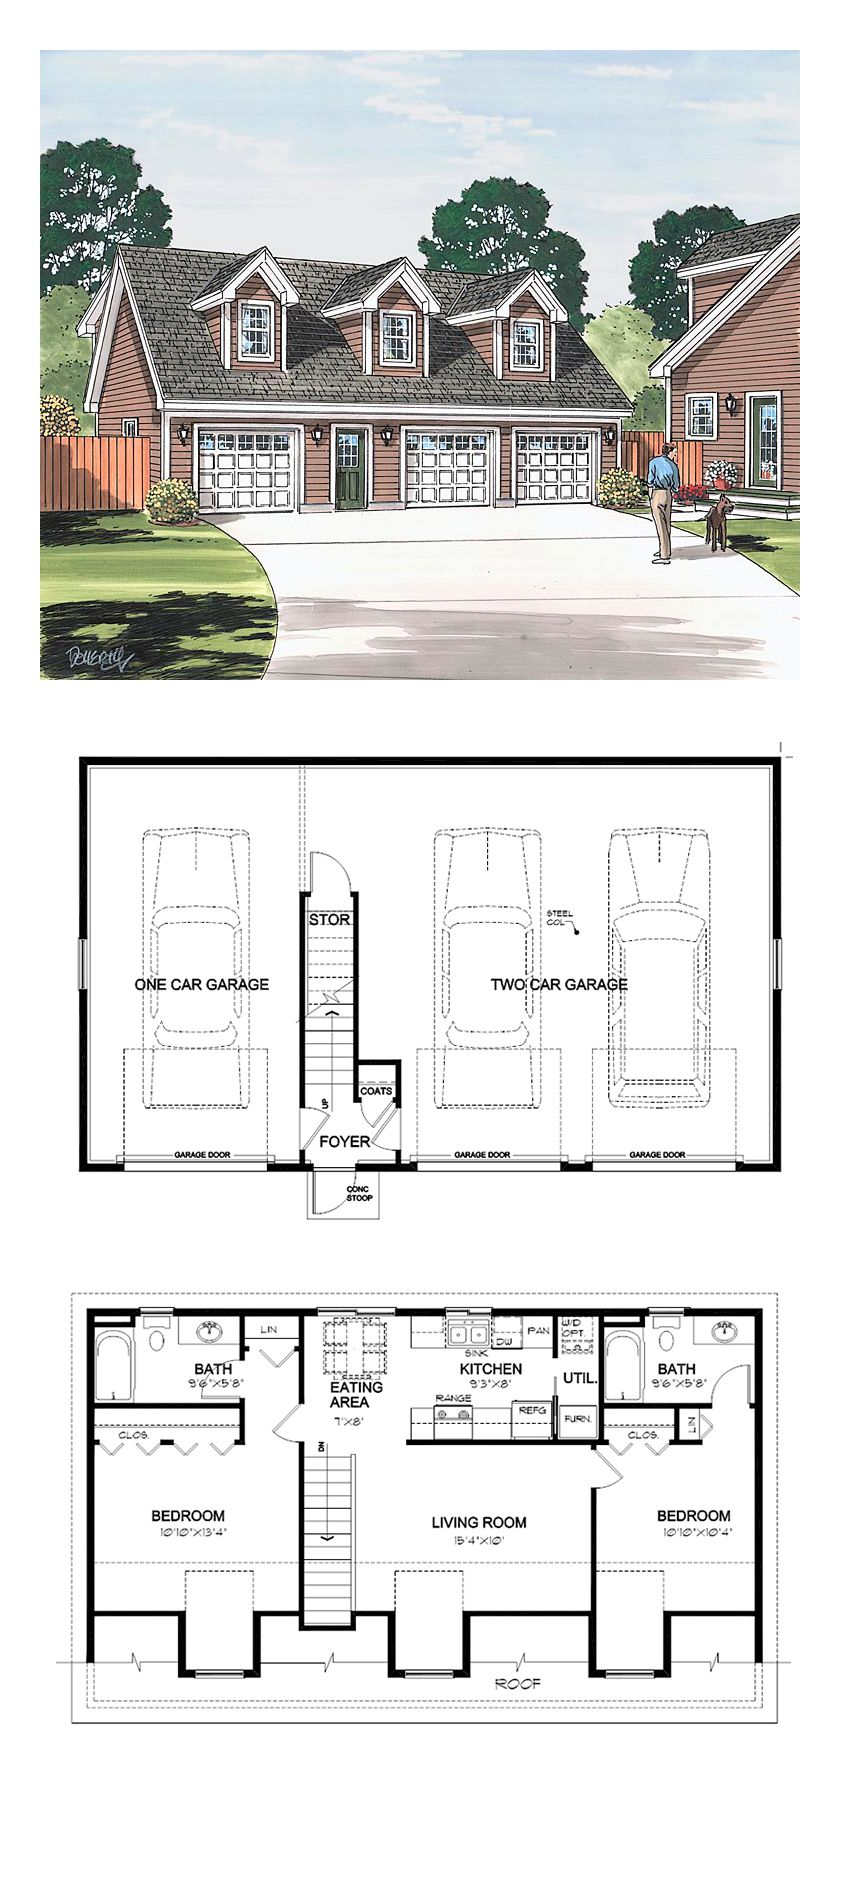 Garage Apartment Plan 30032 Total Living Area 887 Sq Ft 2 Bedrooms And Bathrooms 1068 Carriagehouse